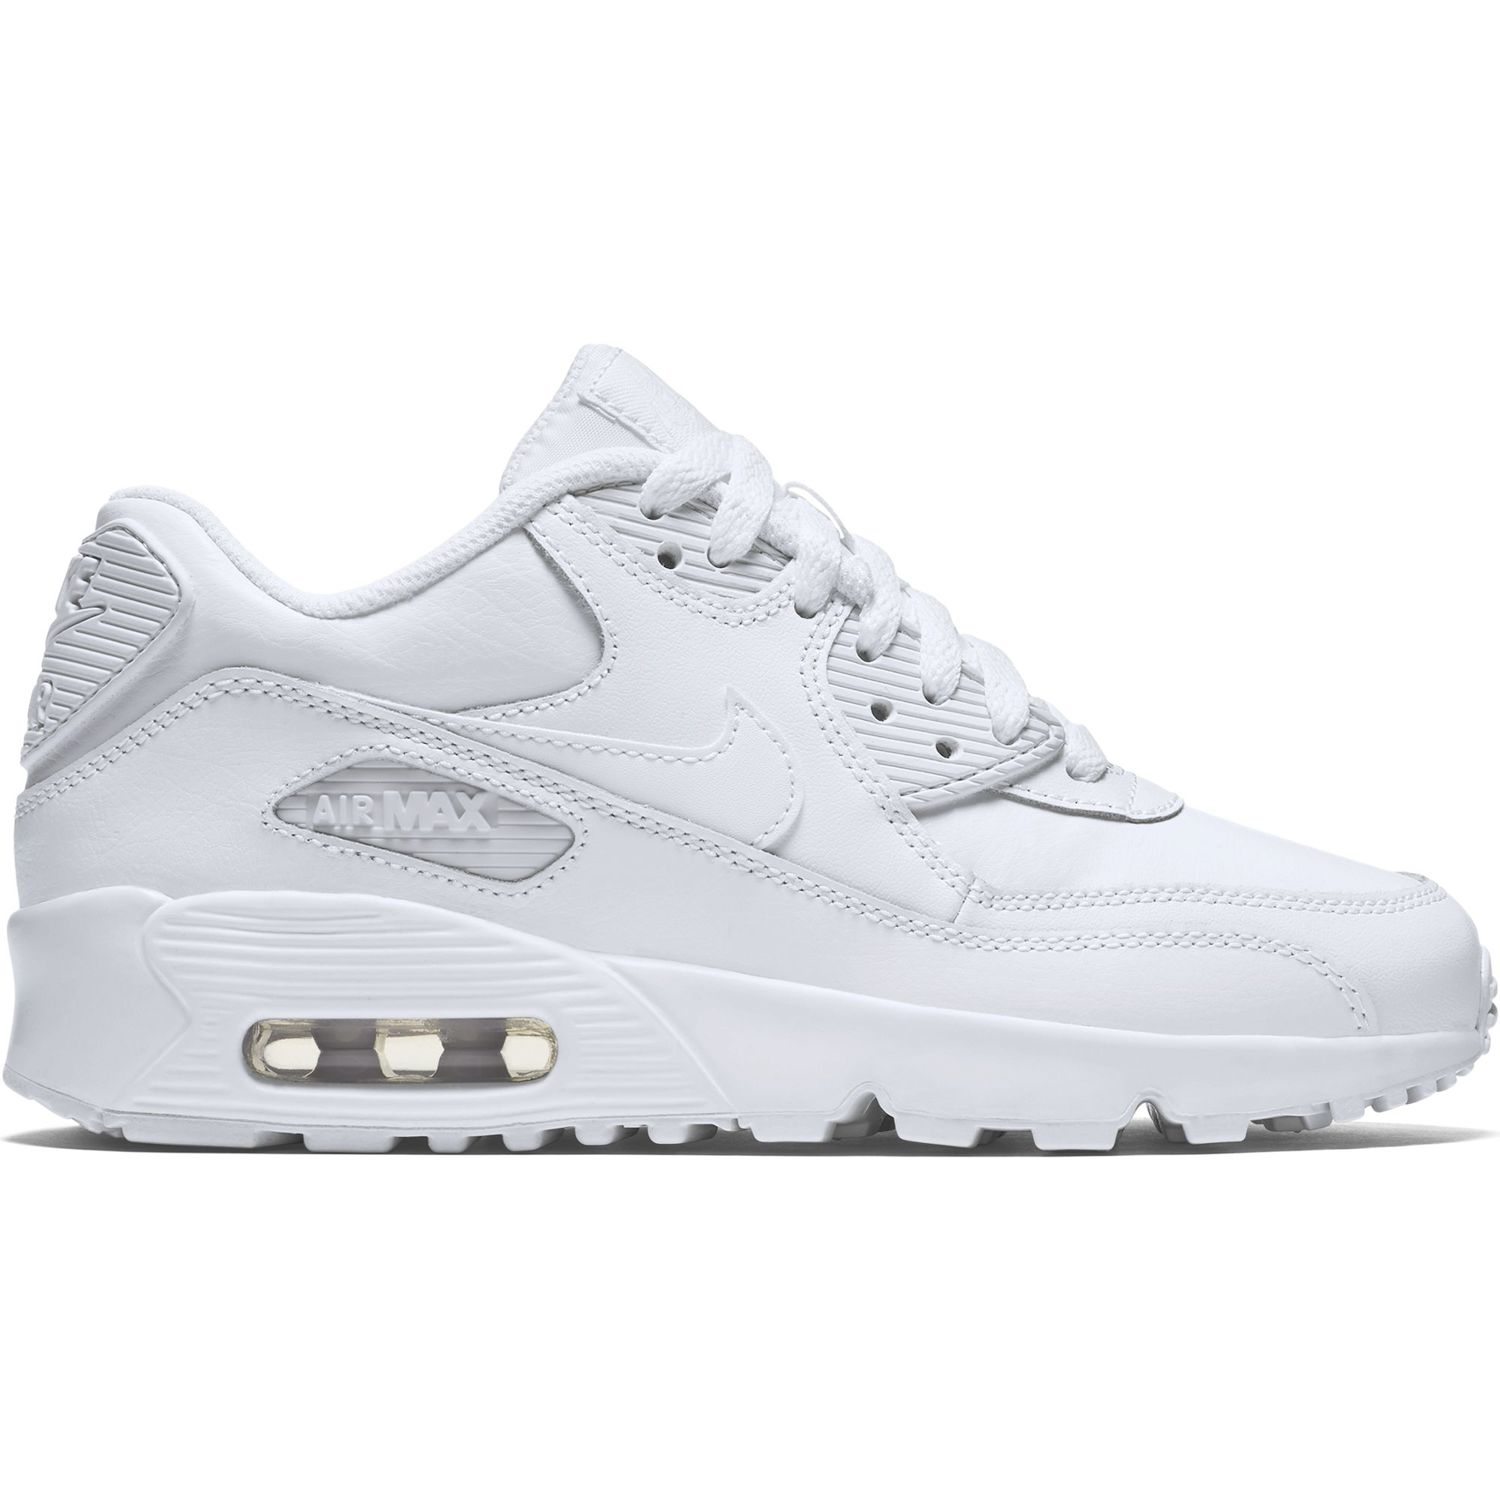 lowest price fe69c 90be3 Buty Nike Air Max 90 Ltr GS 833412-100 r. 36 - 6994990130 - oficjalne  archiwum allegro